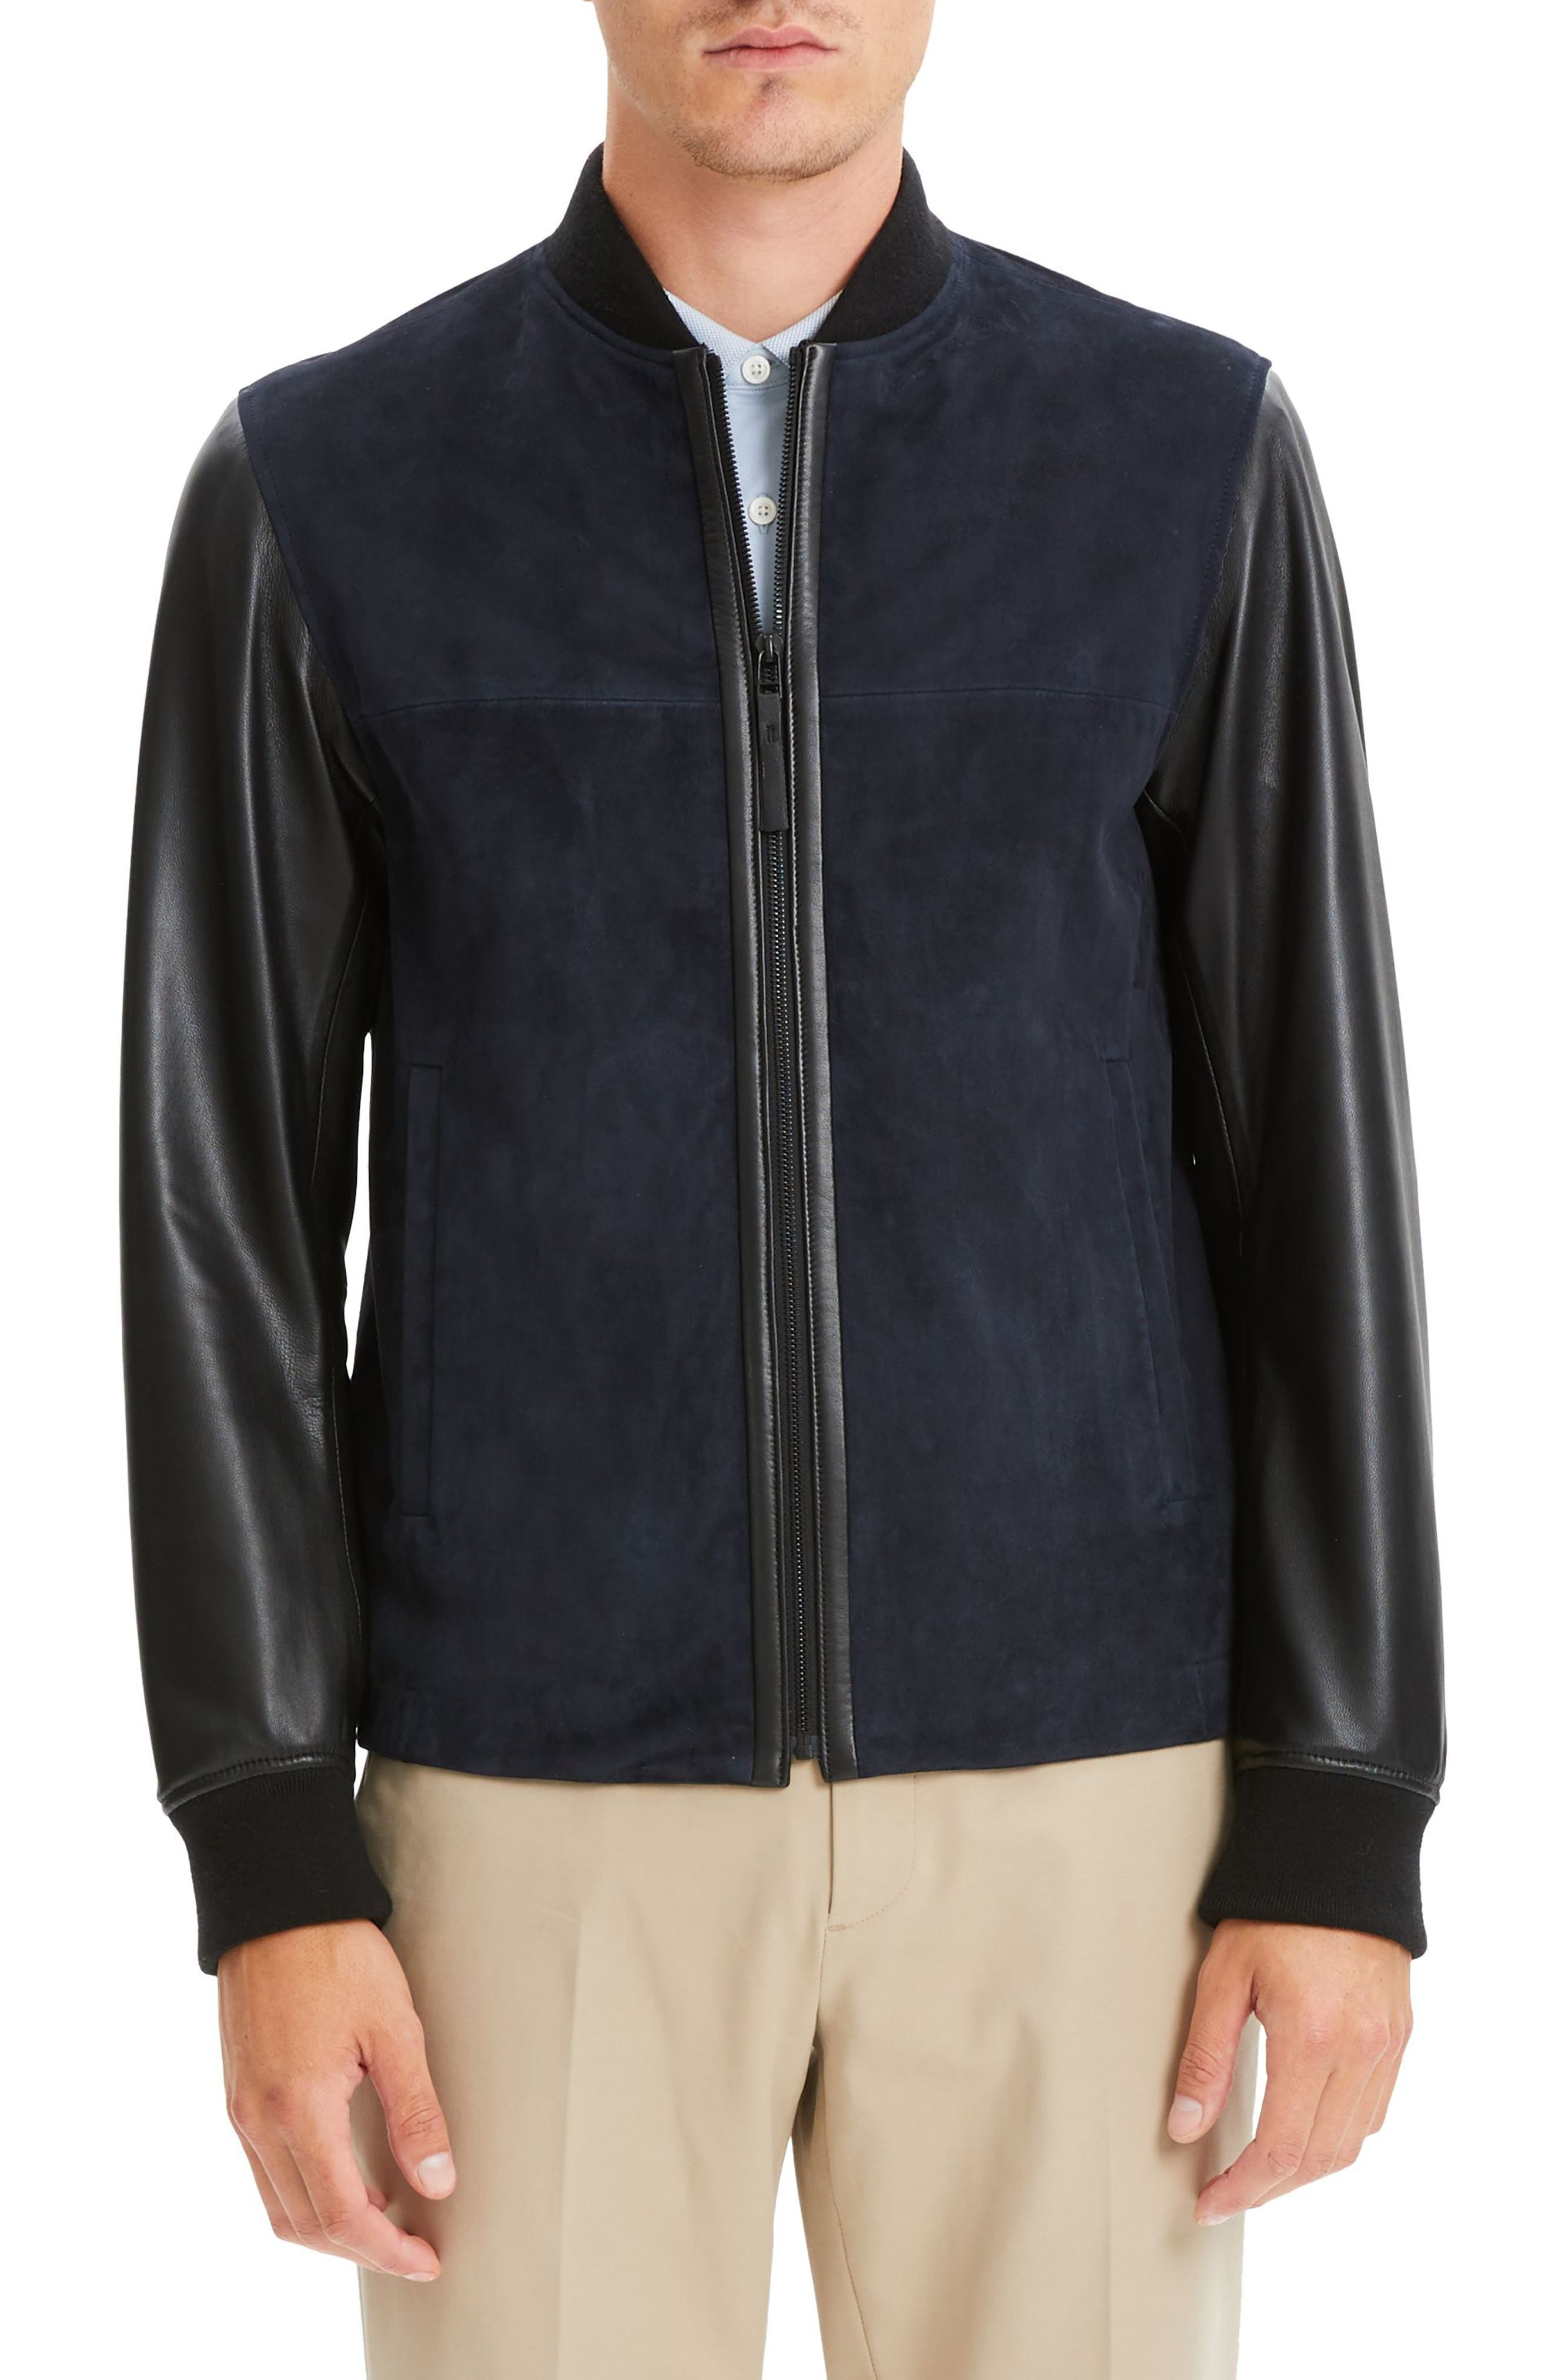 THEORY, Amir Regular Fit Suede & Leather Bomber Jacket, Main thumbnail 1, color, ECLIPSE/ BLACK